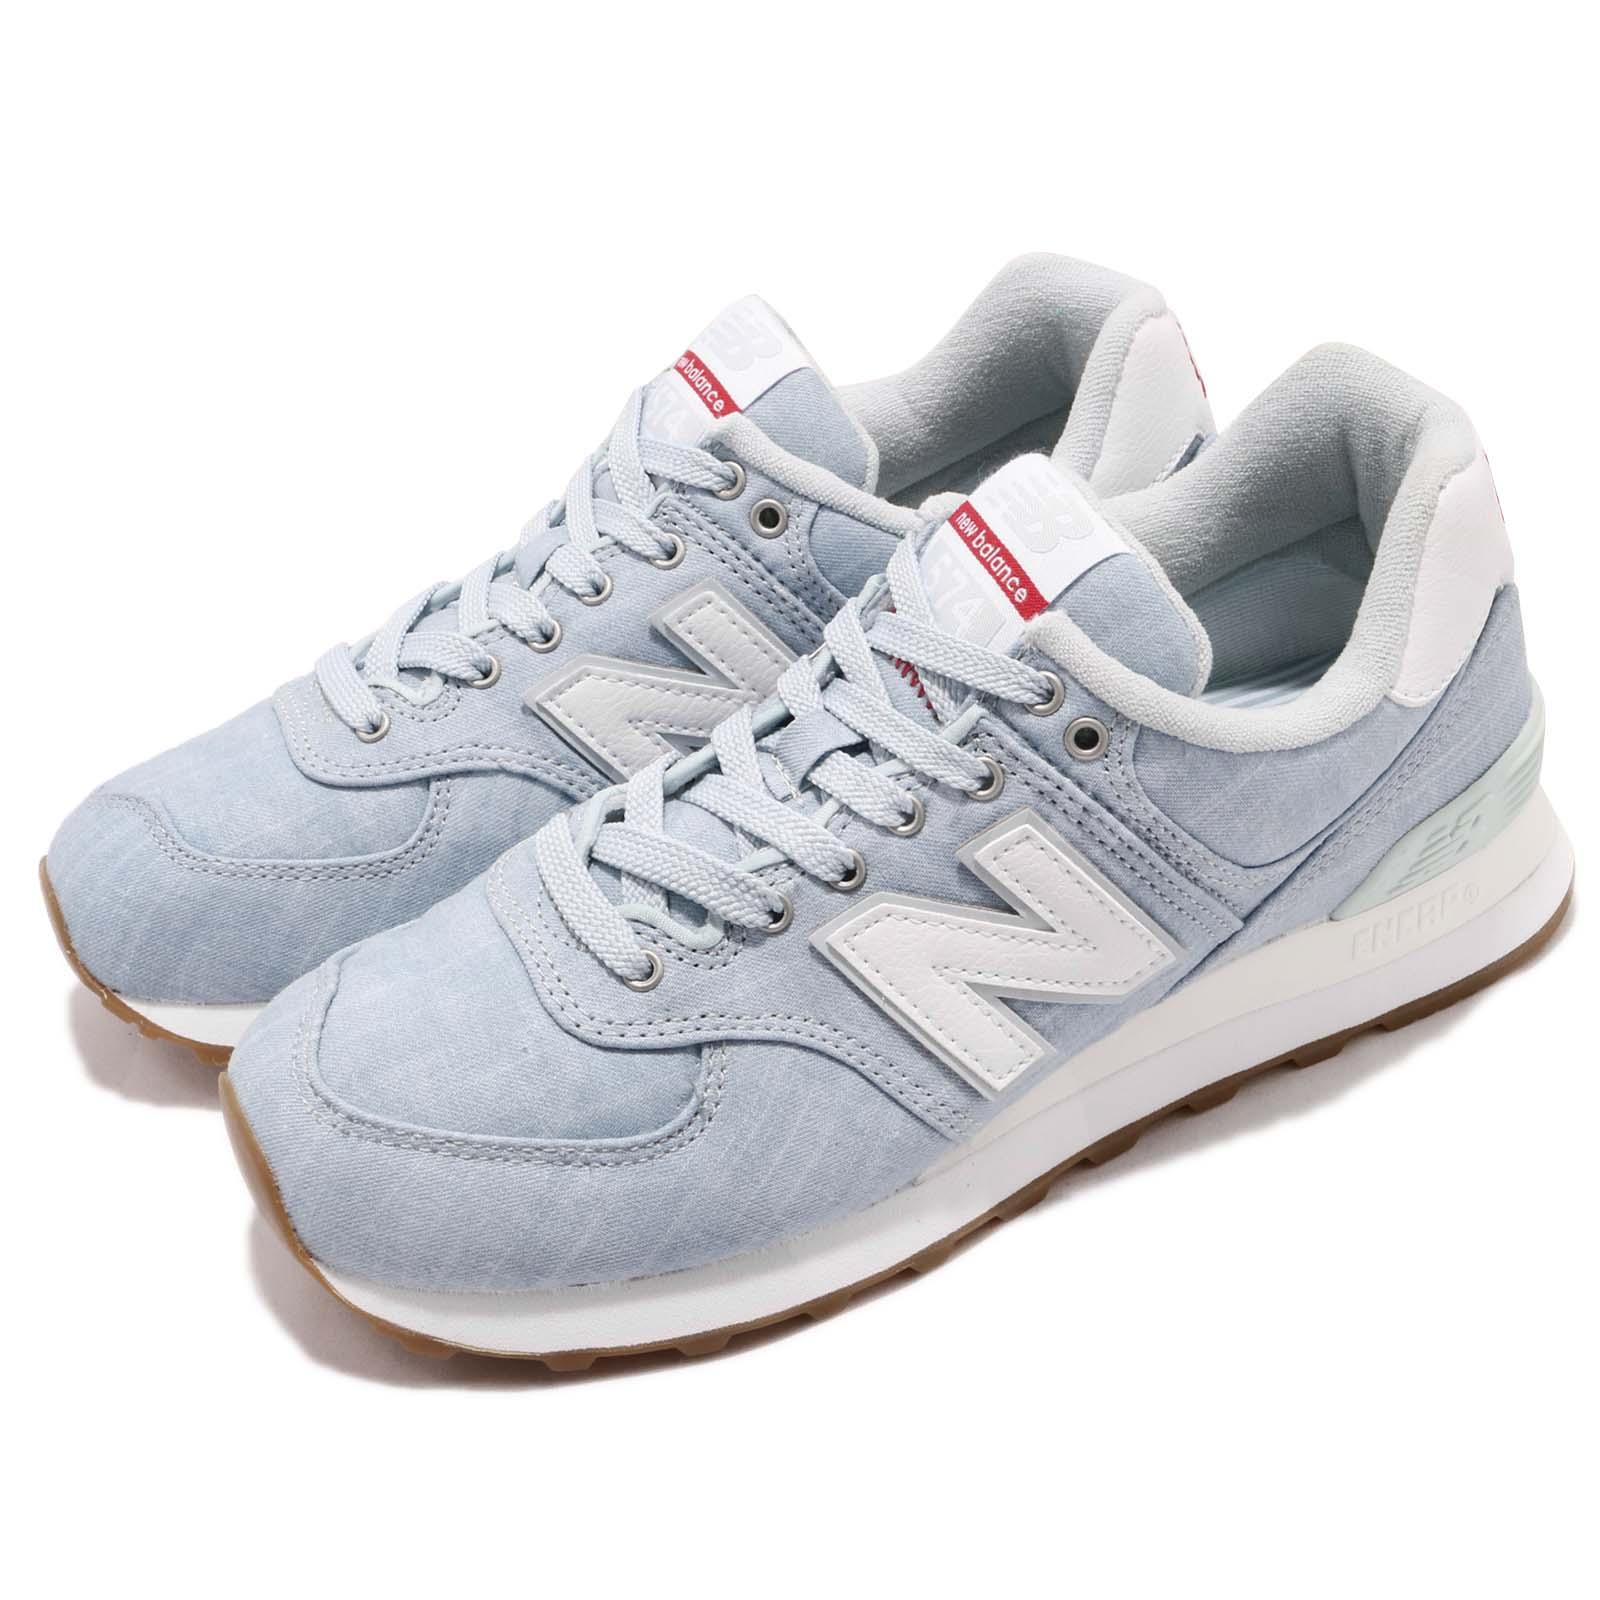 New Balance ML574YLF D Blue White Gum Men Running Shoes Sneakers ML574YLFD